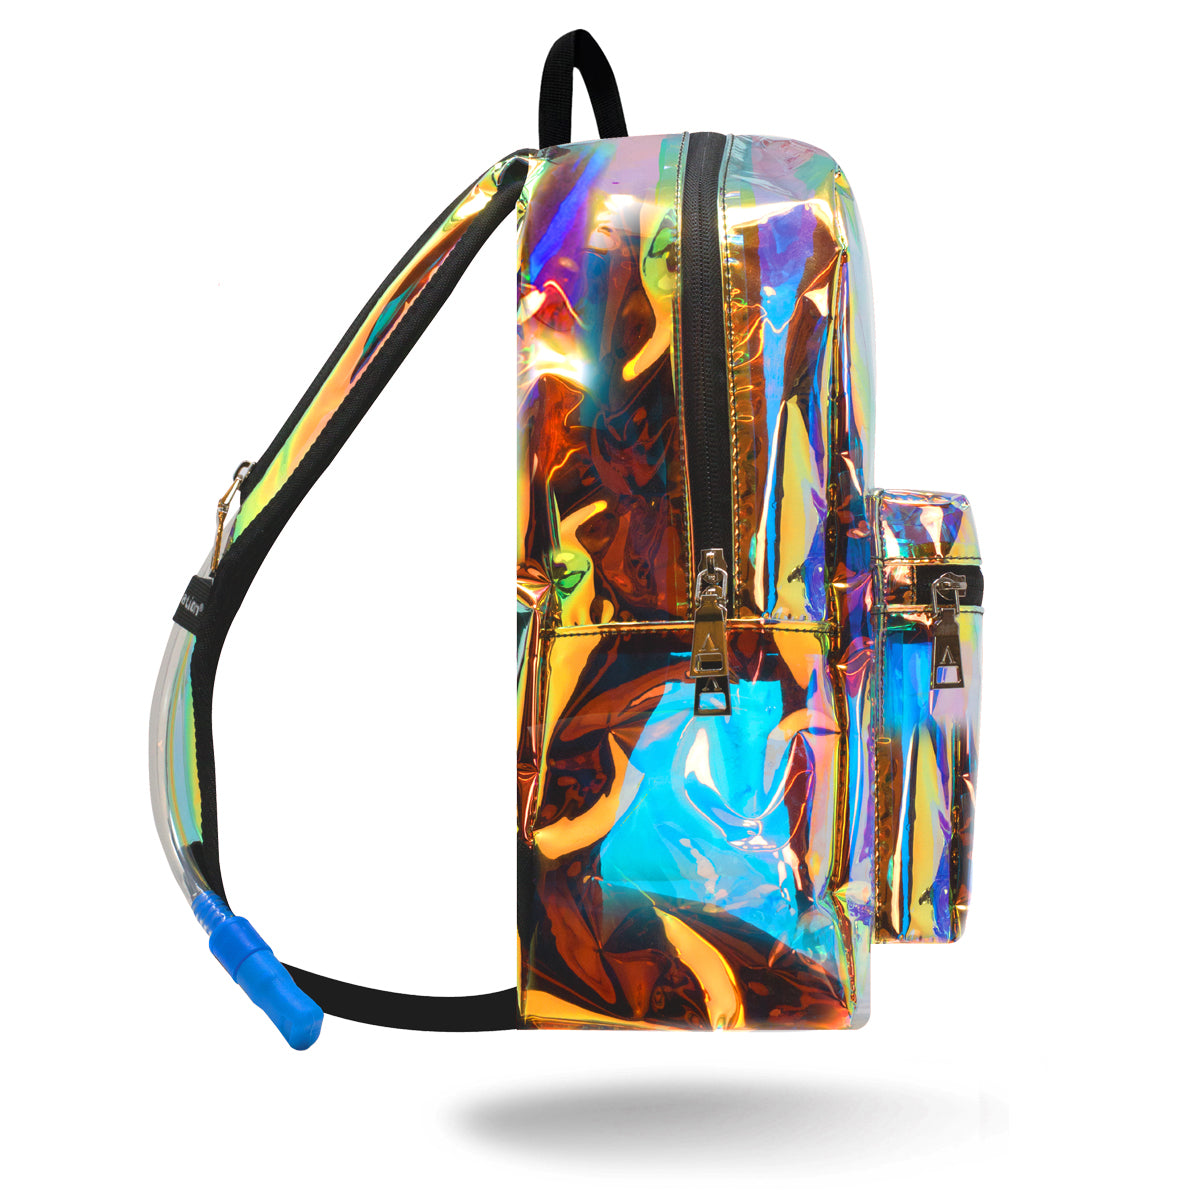 Iridescent Backpack for Burning Man